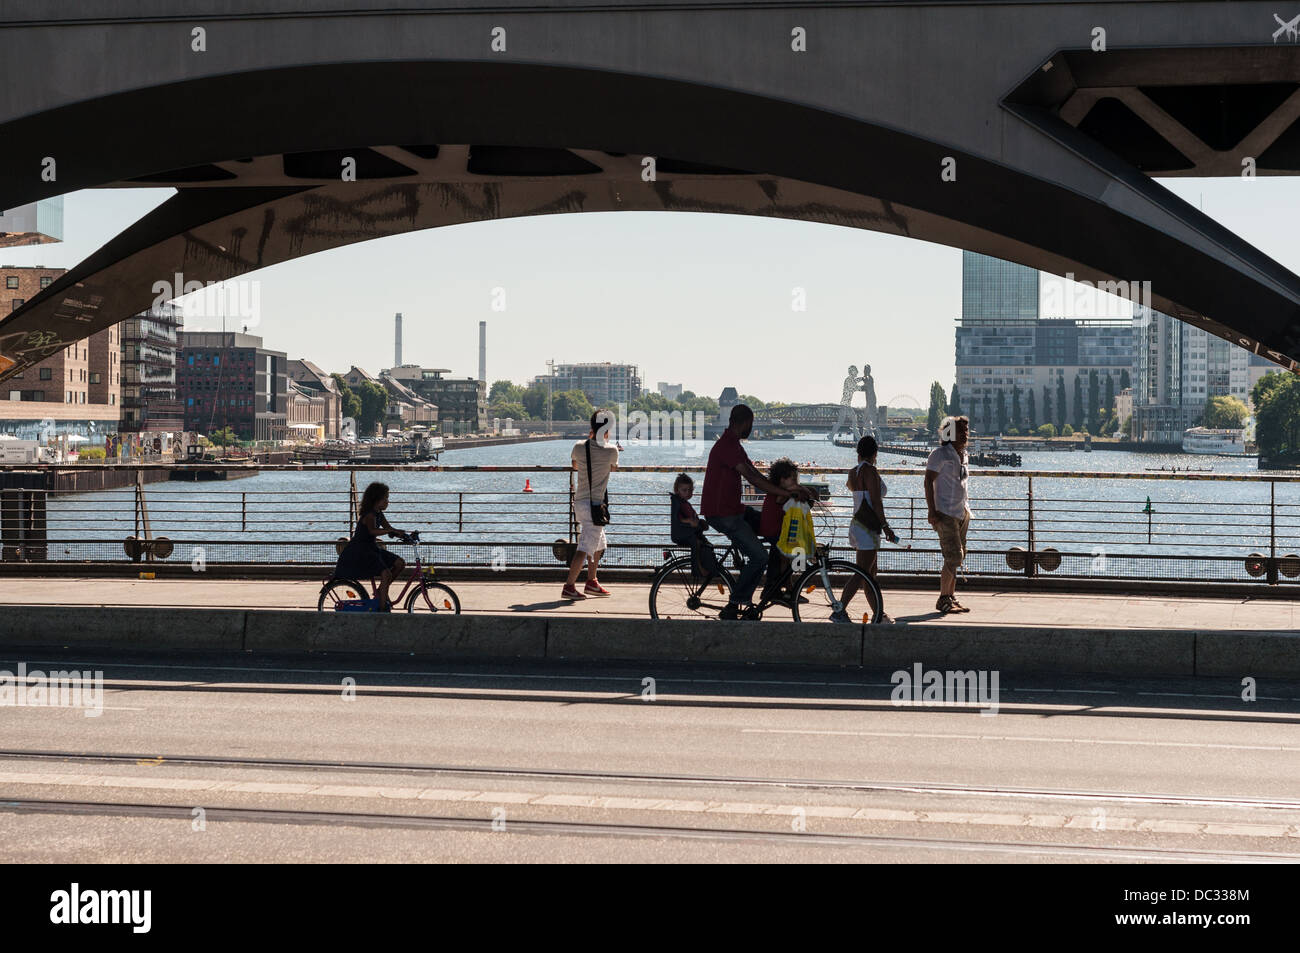 People with bicycles standing on the Oberbaum Bridge looking at the Spree River and the Molecule Man sculpture Stock Photo